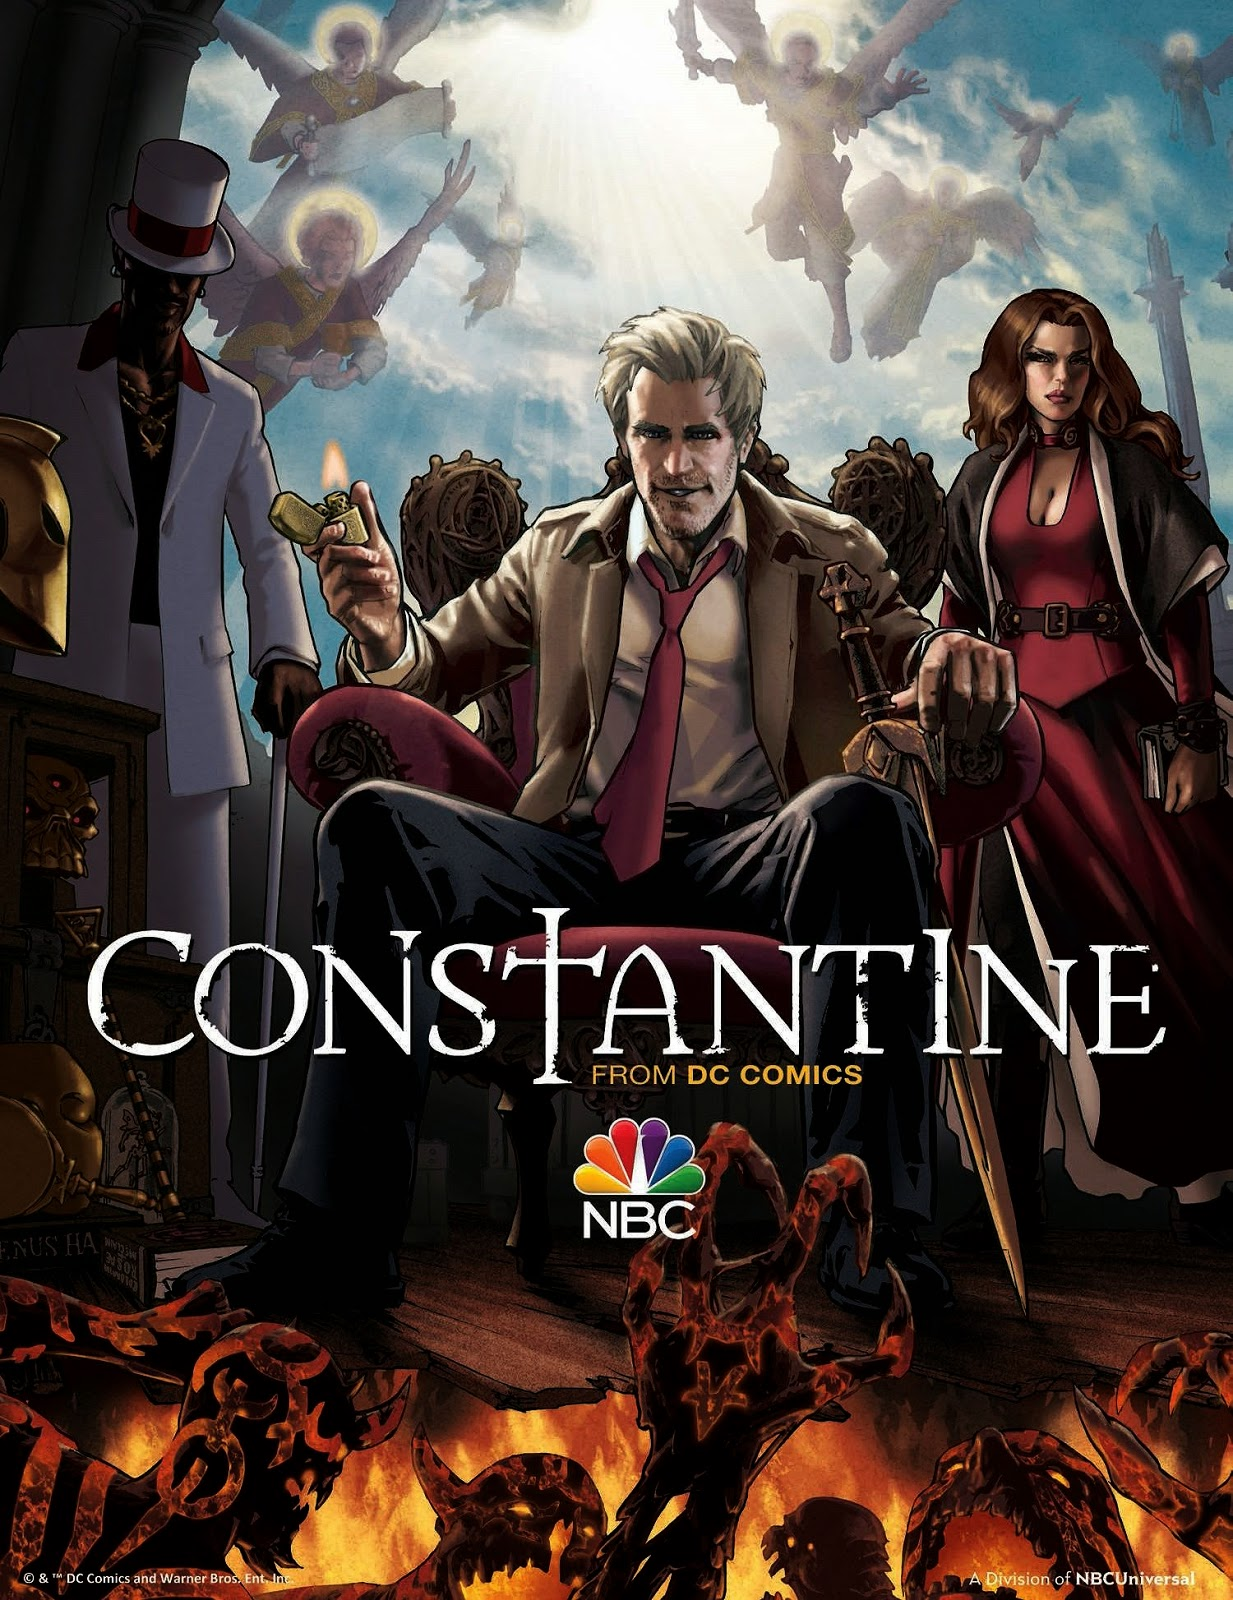 Constantine Illustrated Television Poster by Gene Ha